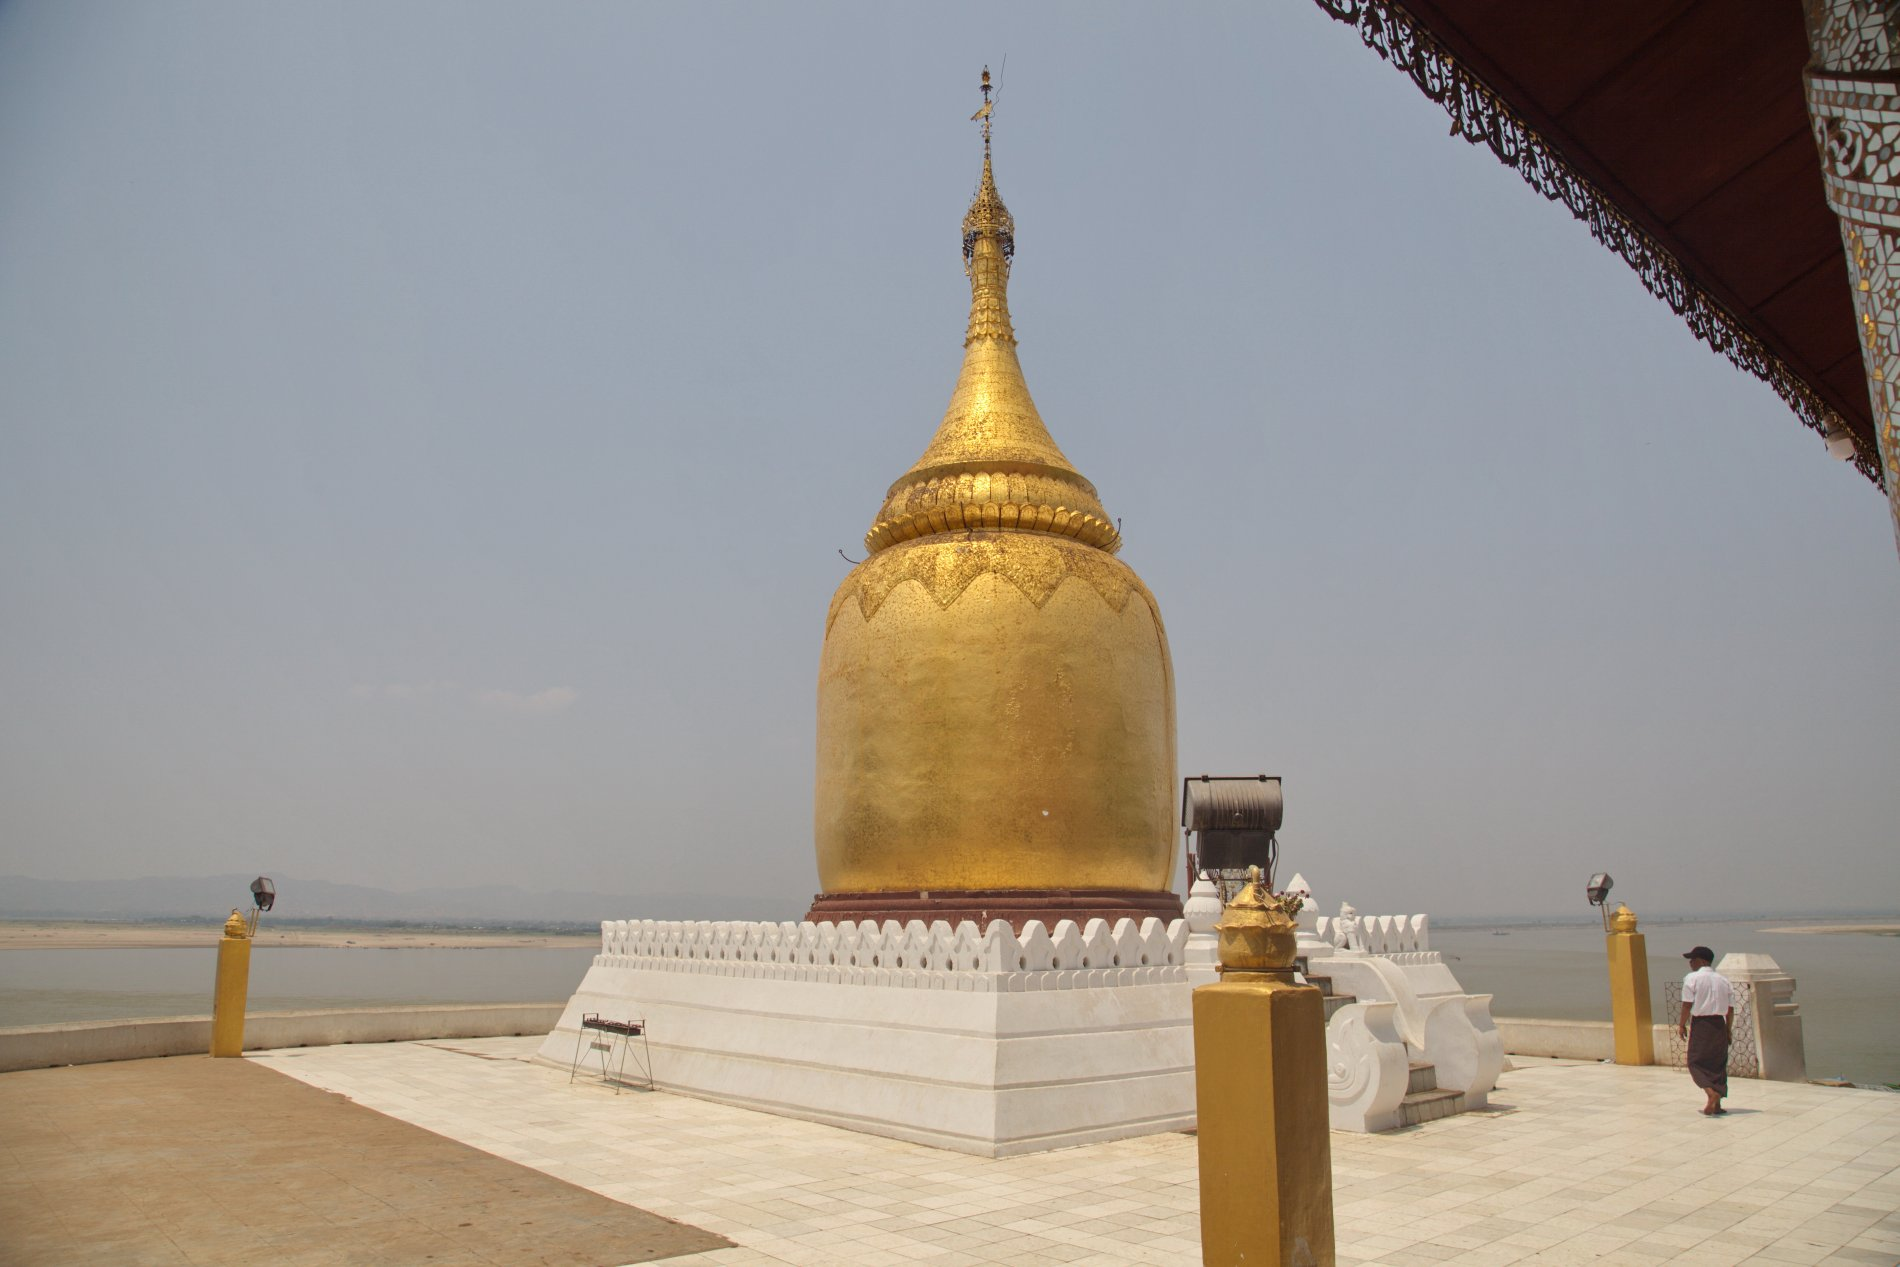 Bagan_298.jpg-commment